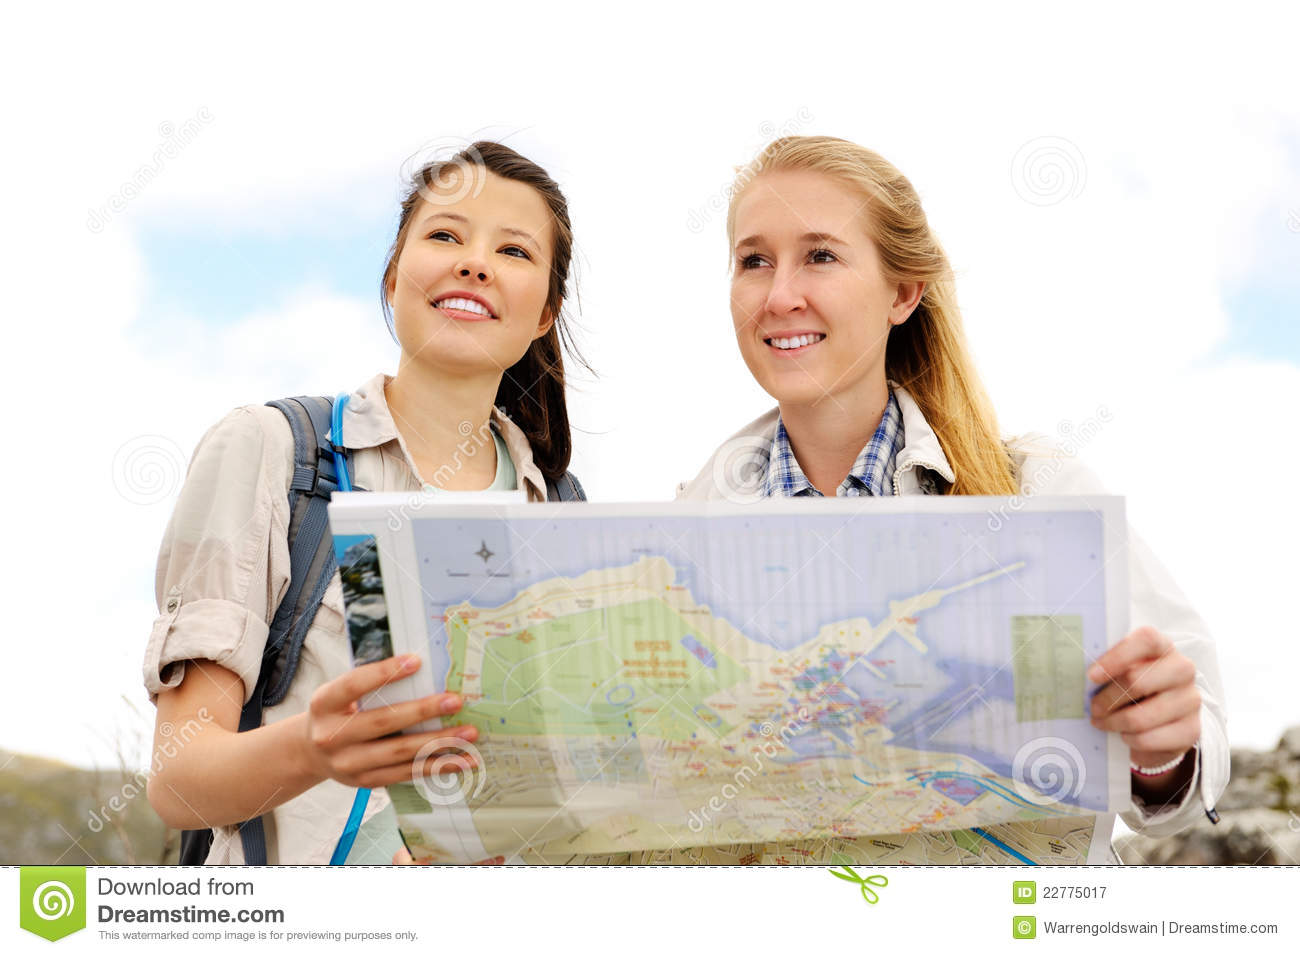 Two young women discussing the direction to take